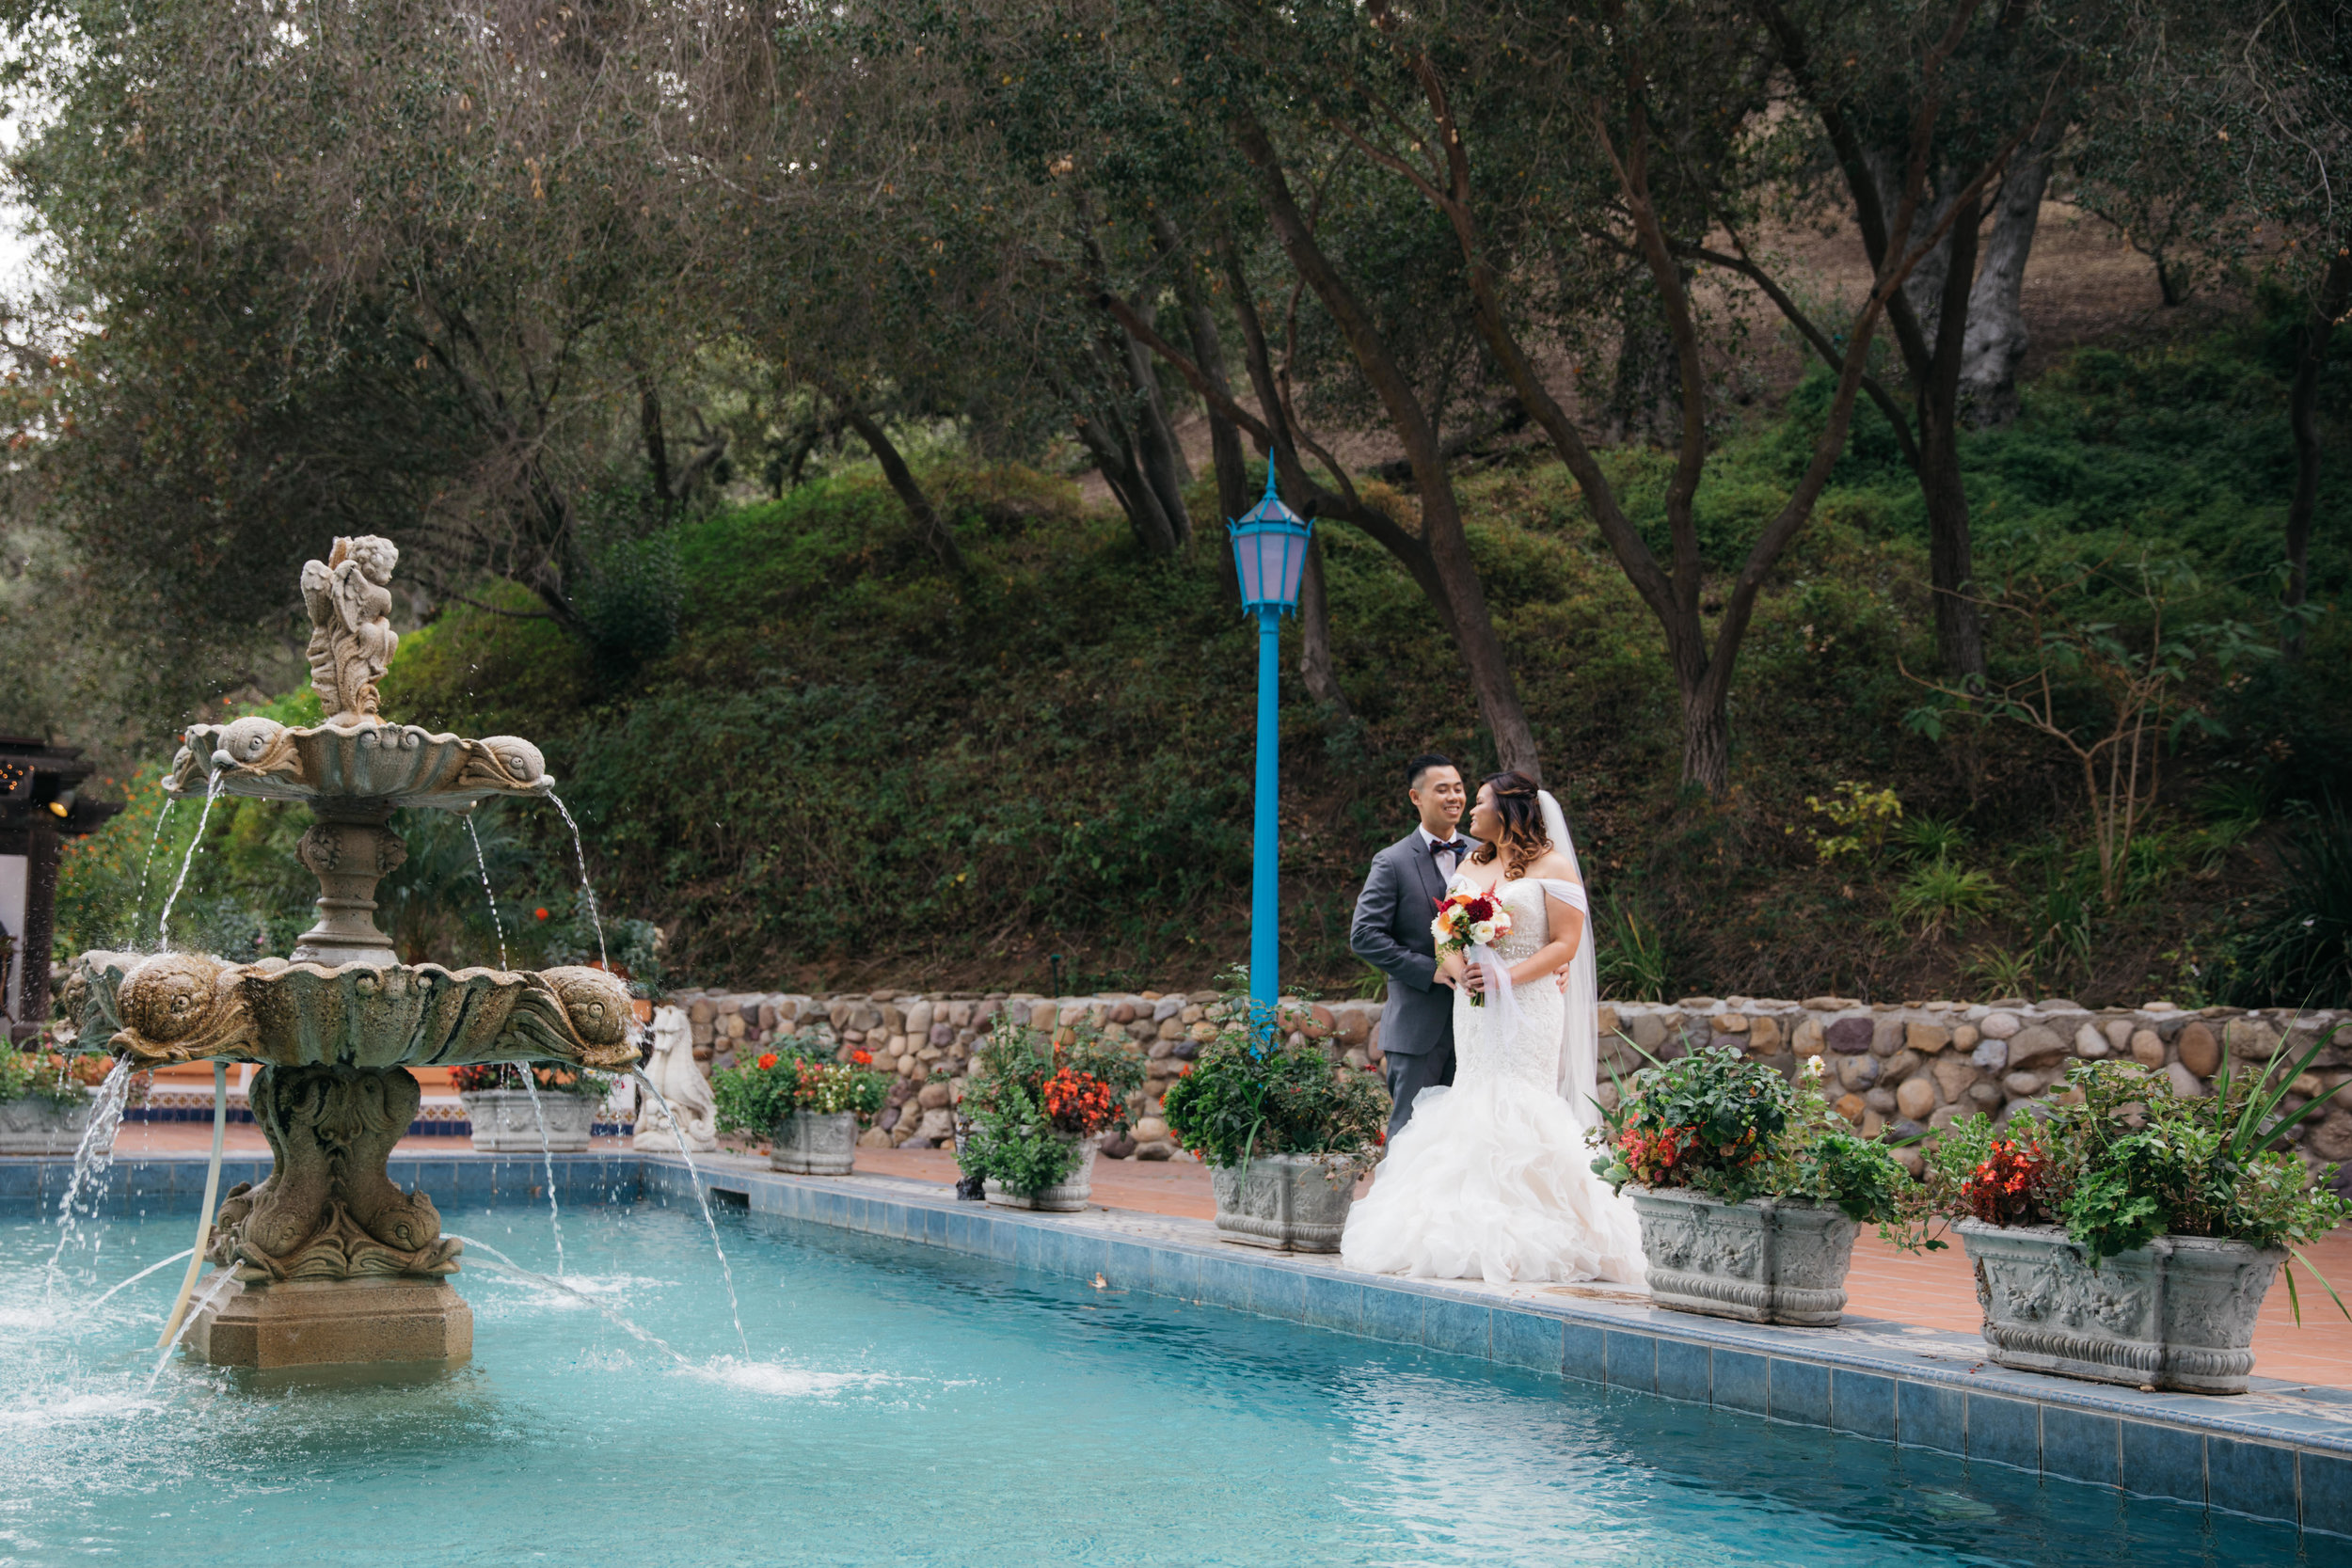 rancho-las-lomas-wedding-planner-best-wedding-planner-in-southern-california32.jpg